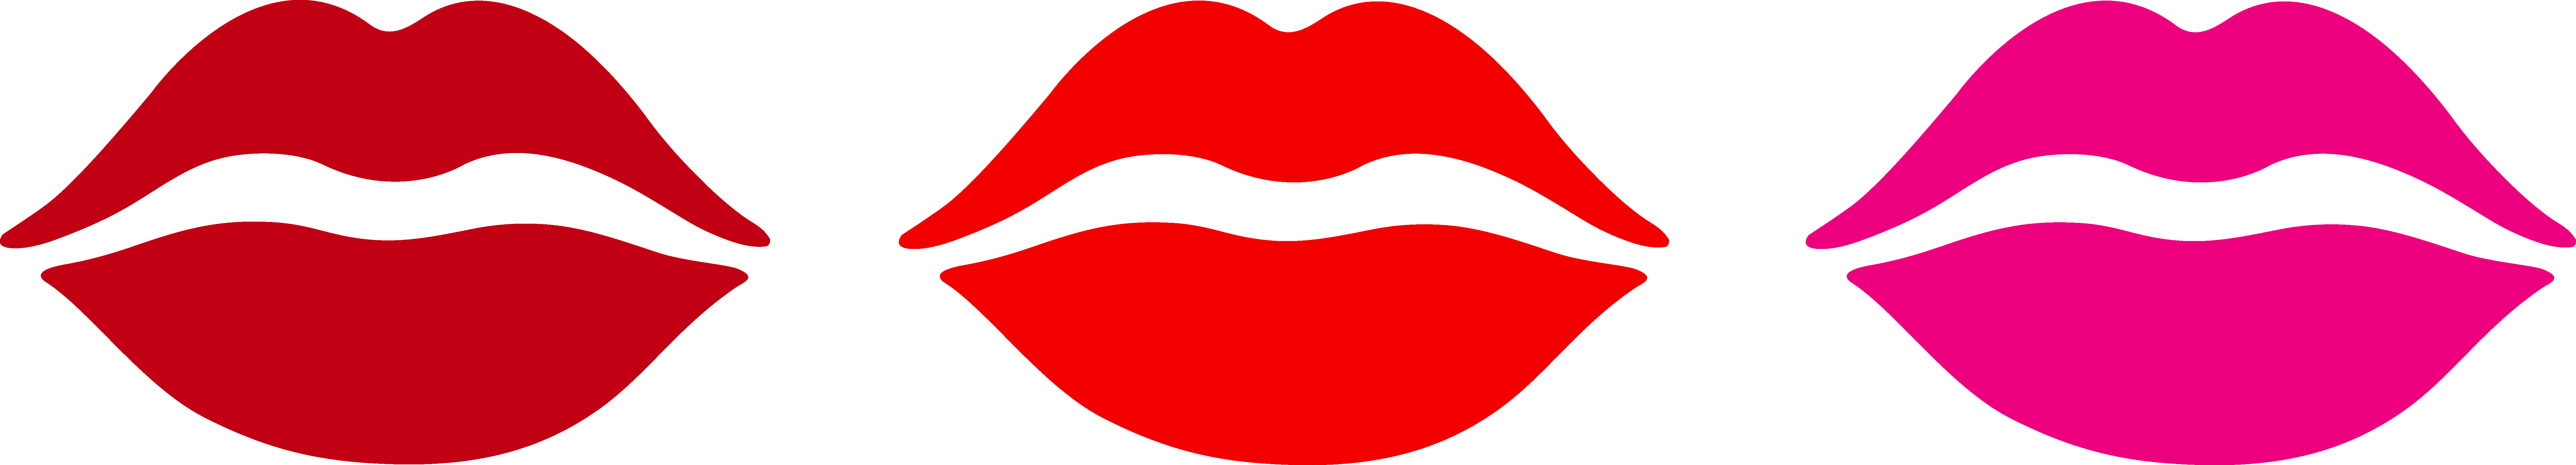 Kiss clipart. Free hershey kisses cliparts